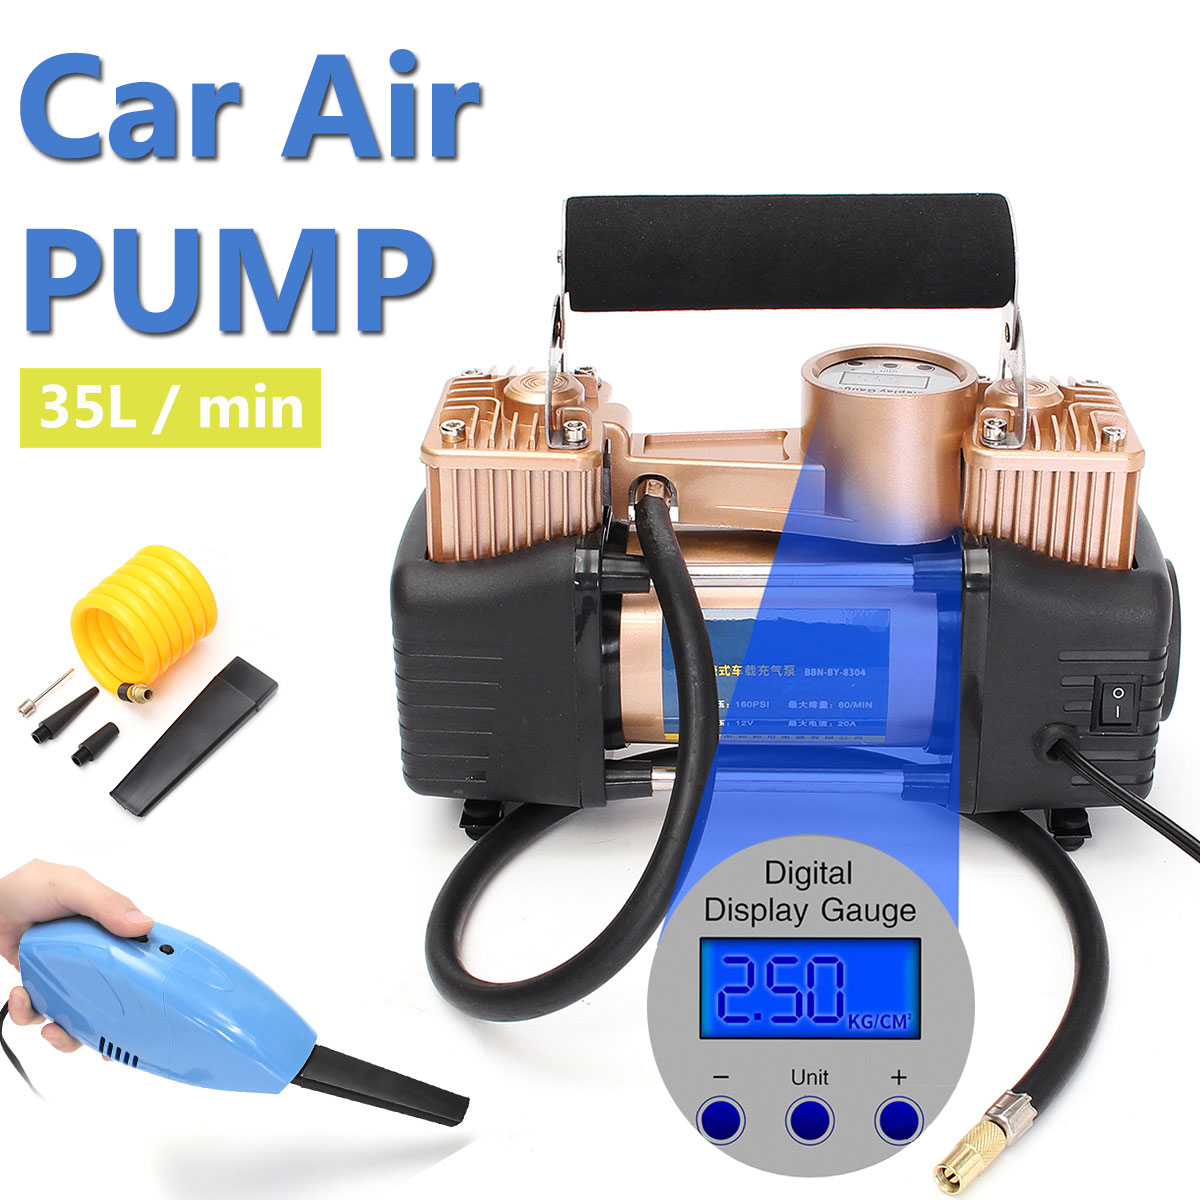 12V Portable Digital Car Air Tire Compressor Double Cylinder Heavy Duty 150PSI Tyre Pressure Inflator Pump + Vacuum Cleaner 2 in 1 multifunction tire inflator air compressor w vacuum cleaner yellow dc 12v